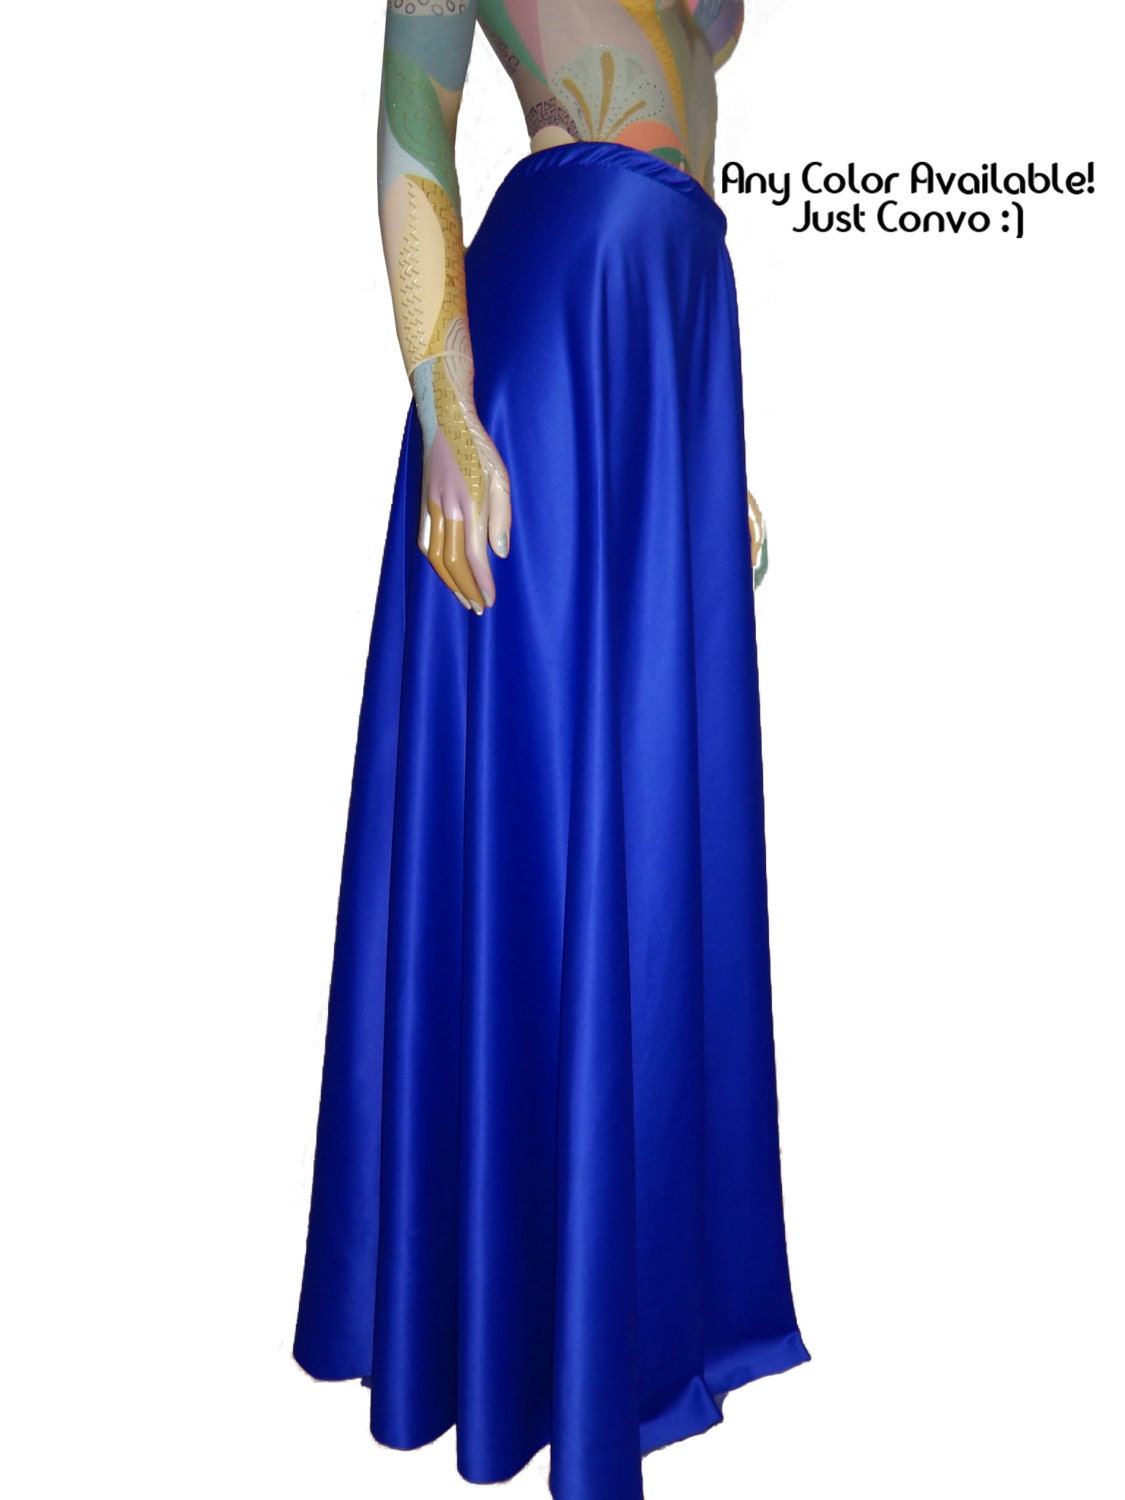 satin skirt blue maxi formal skirt for bridesmaid by